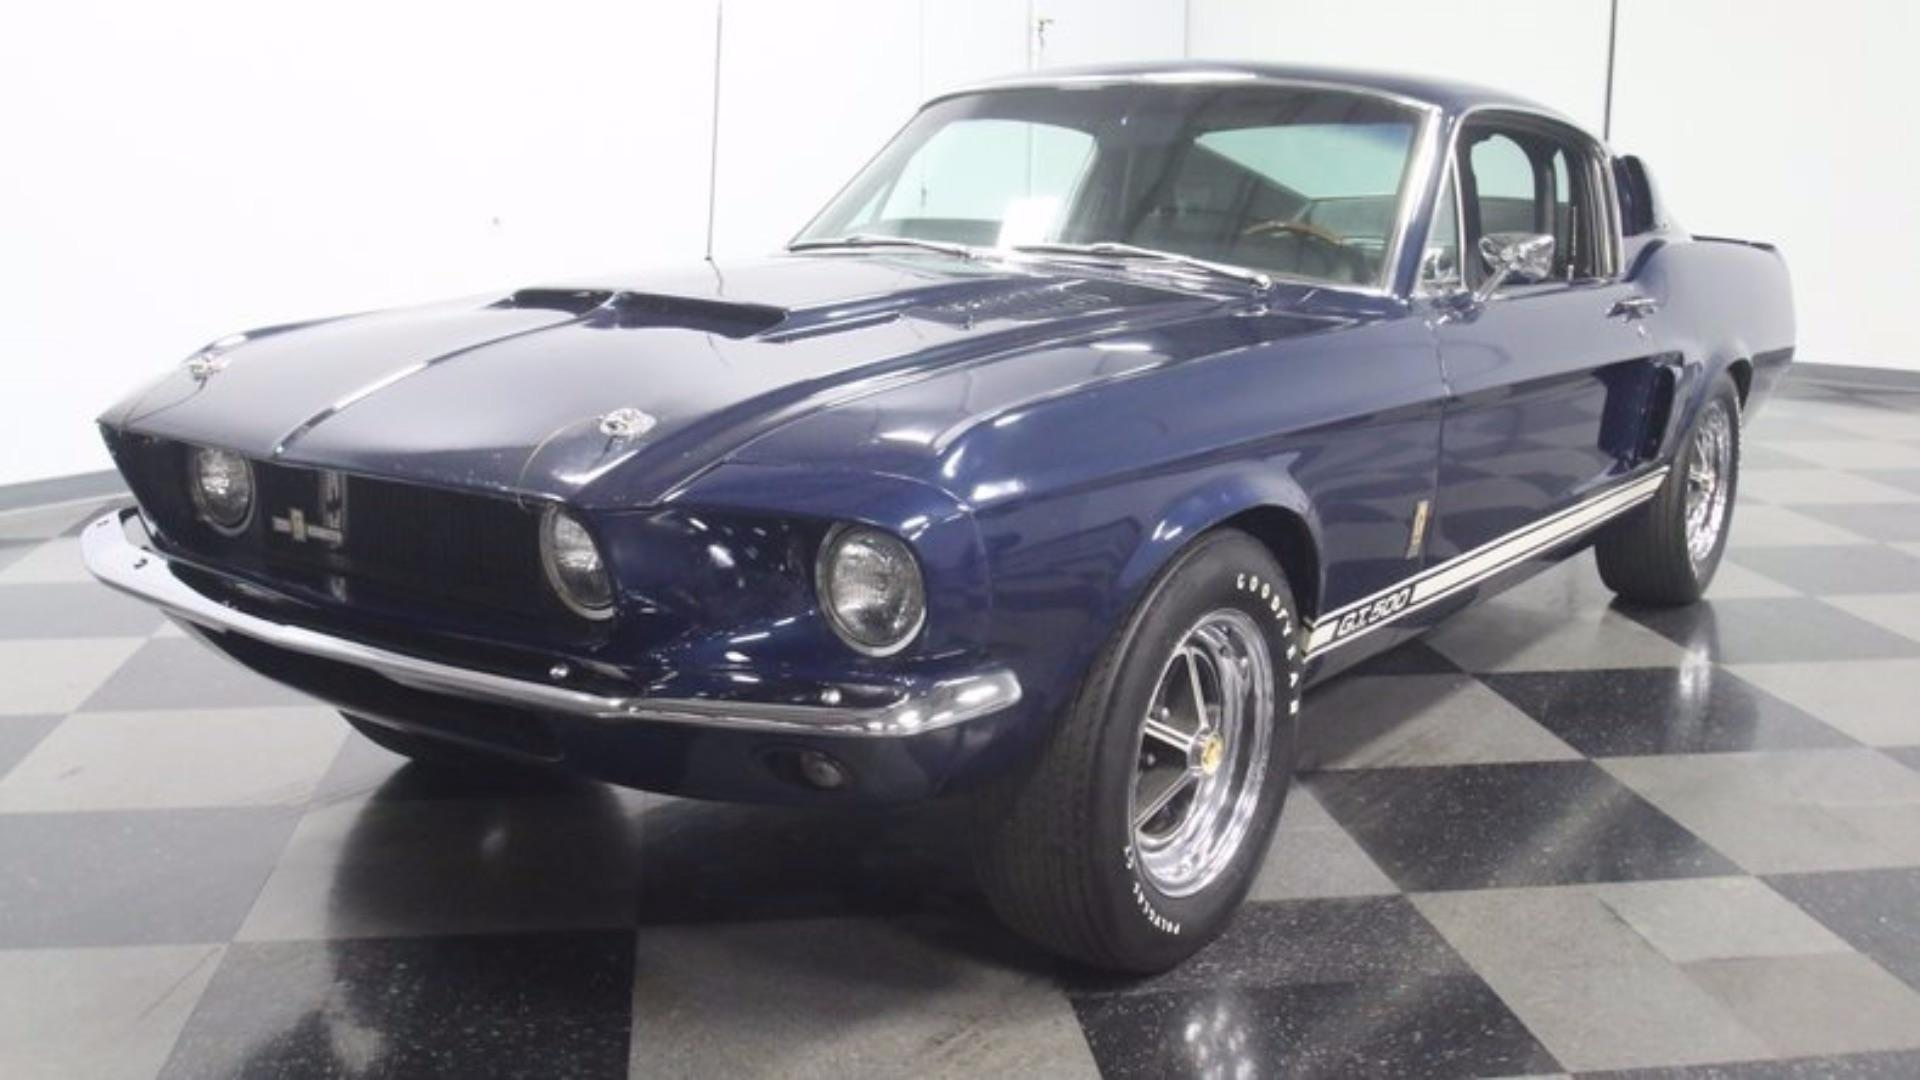 This Stored 1967 Shelby GT500 Is A Complete Time Warp